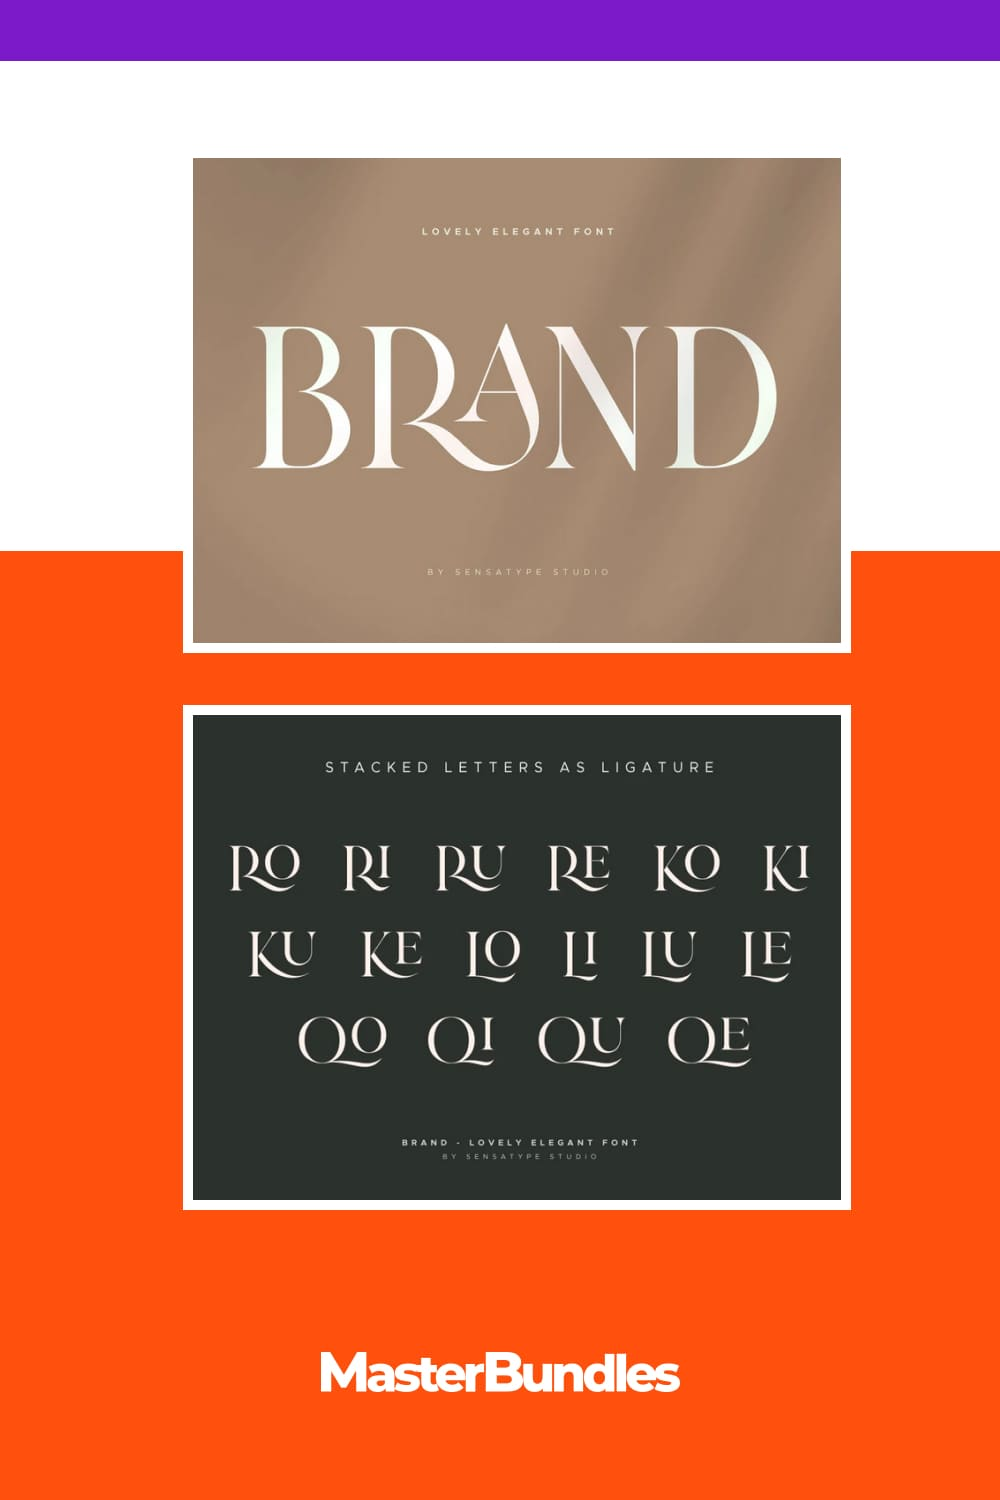 A stylish font that can be a part of a fashion magazine cover.